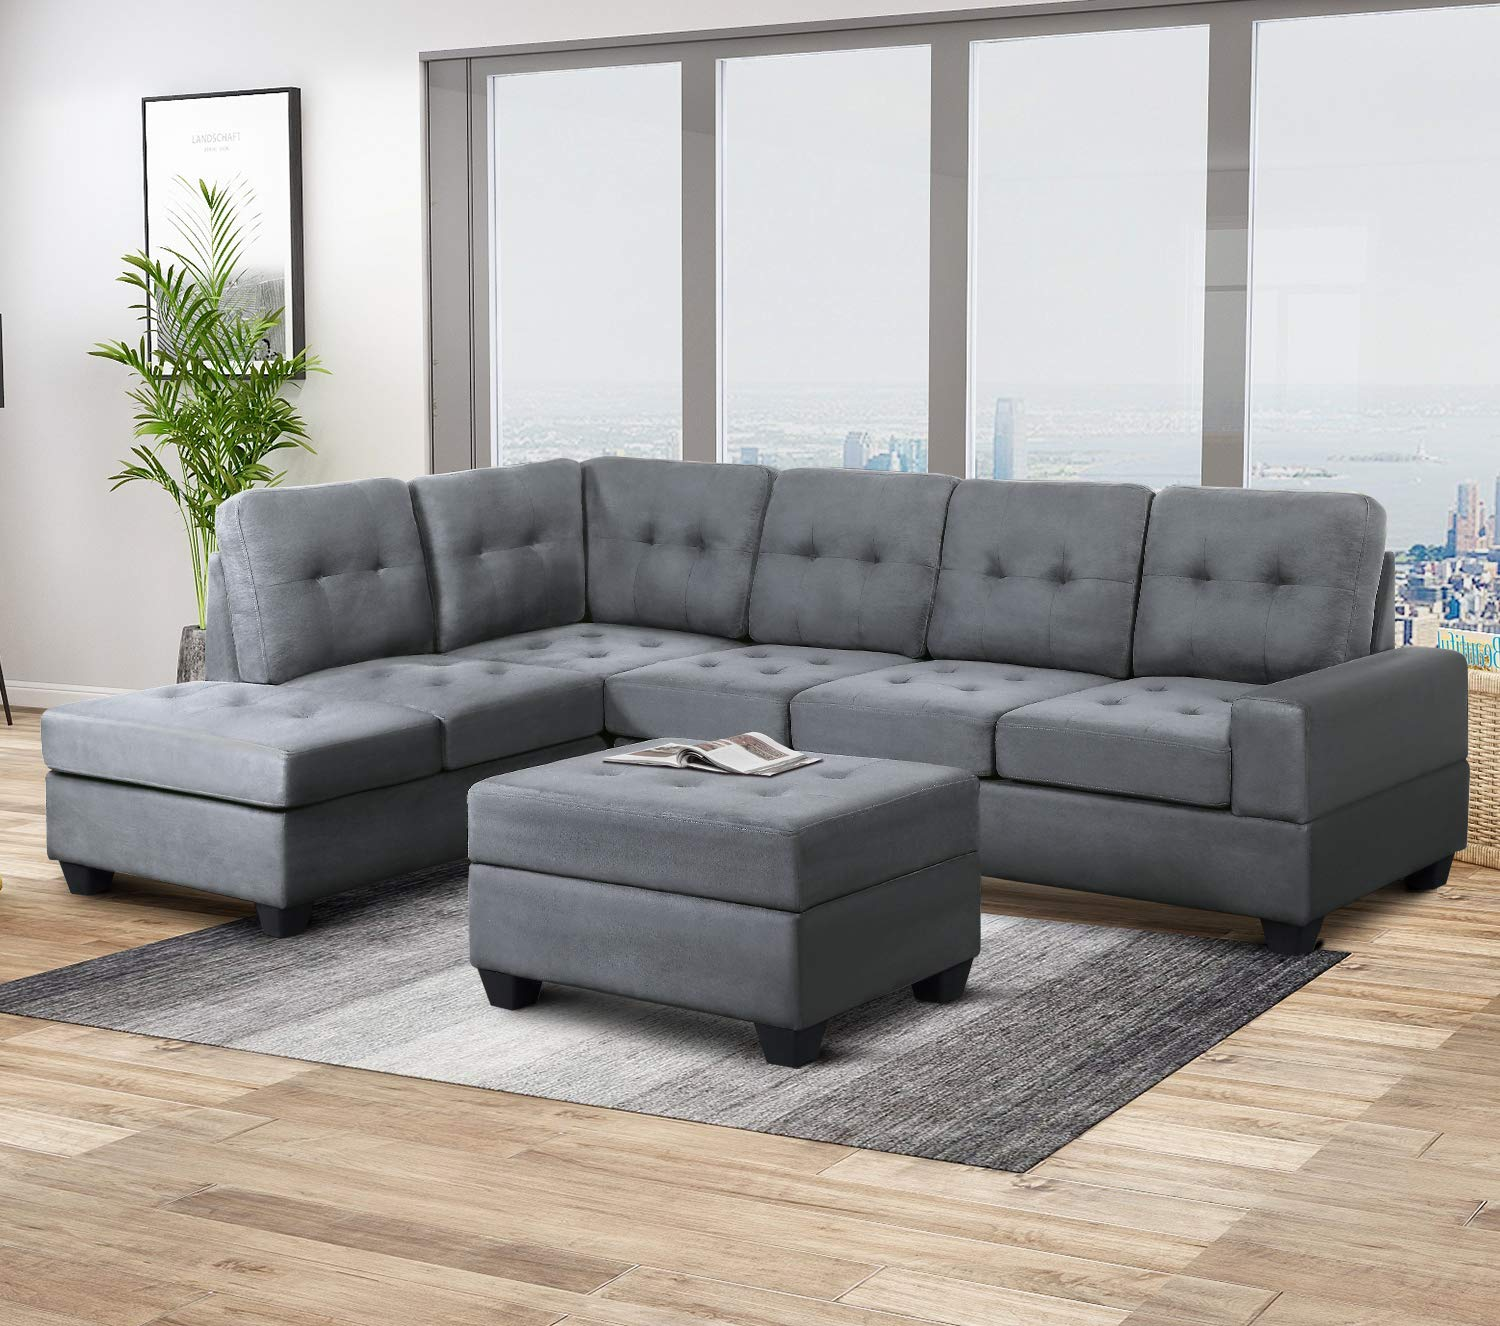 Harper & Bright Designs Sectional Sofa Couch Living Room Sofa Sets 3-Piece Microfiber with Chaise Lounge Storage Ottoman and Cup Holders (Grey) by Harper & Bright Designs